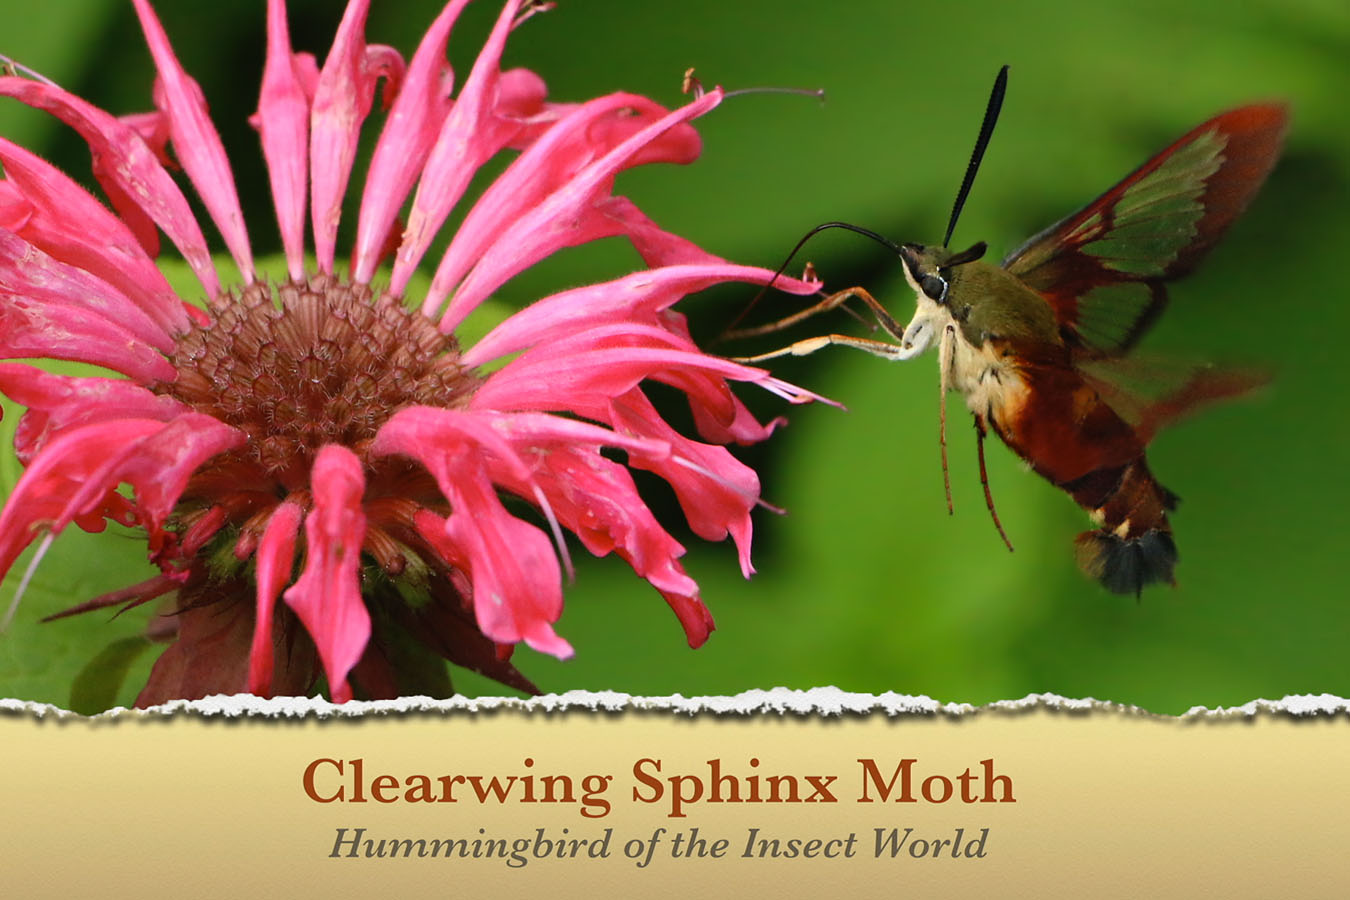 Clearwing Sphinx Moth - featured image